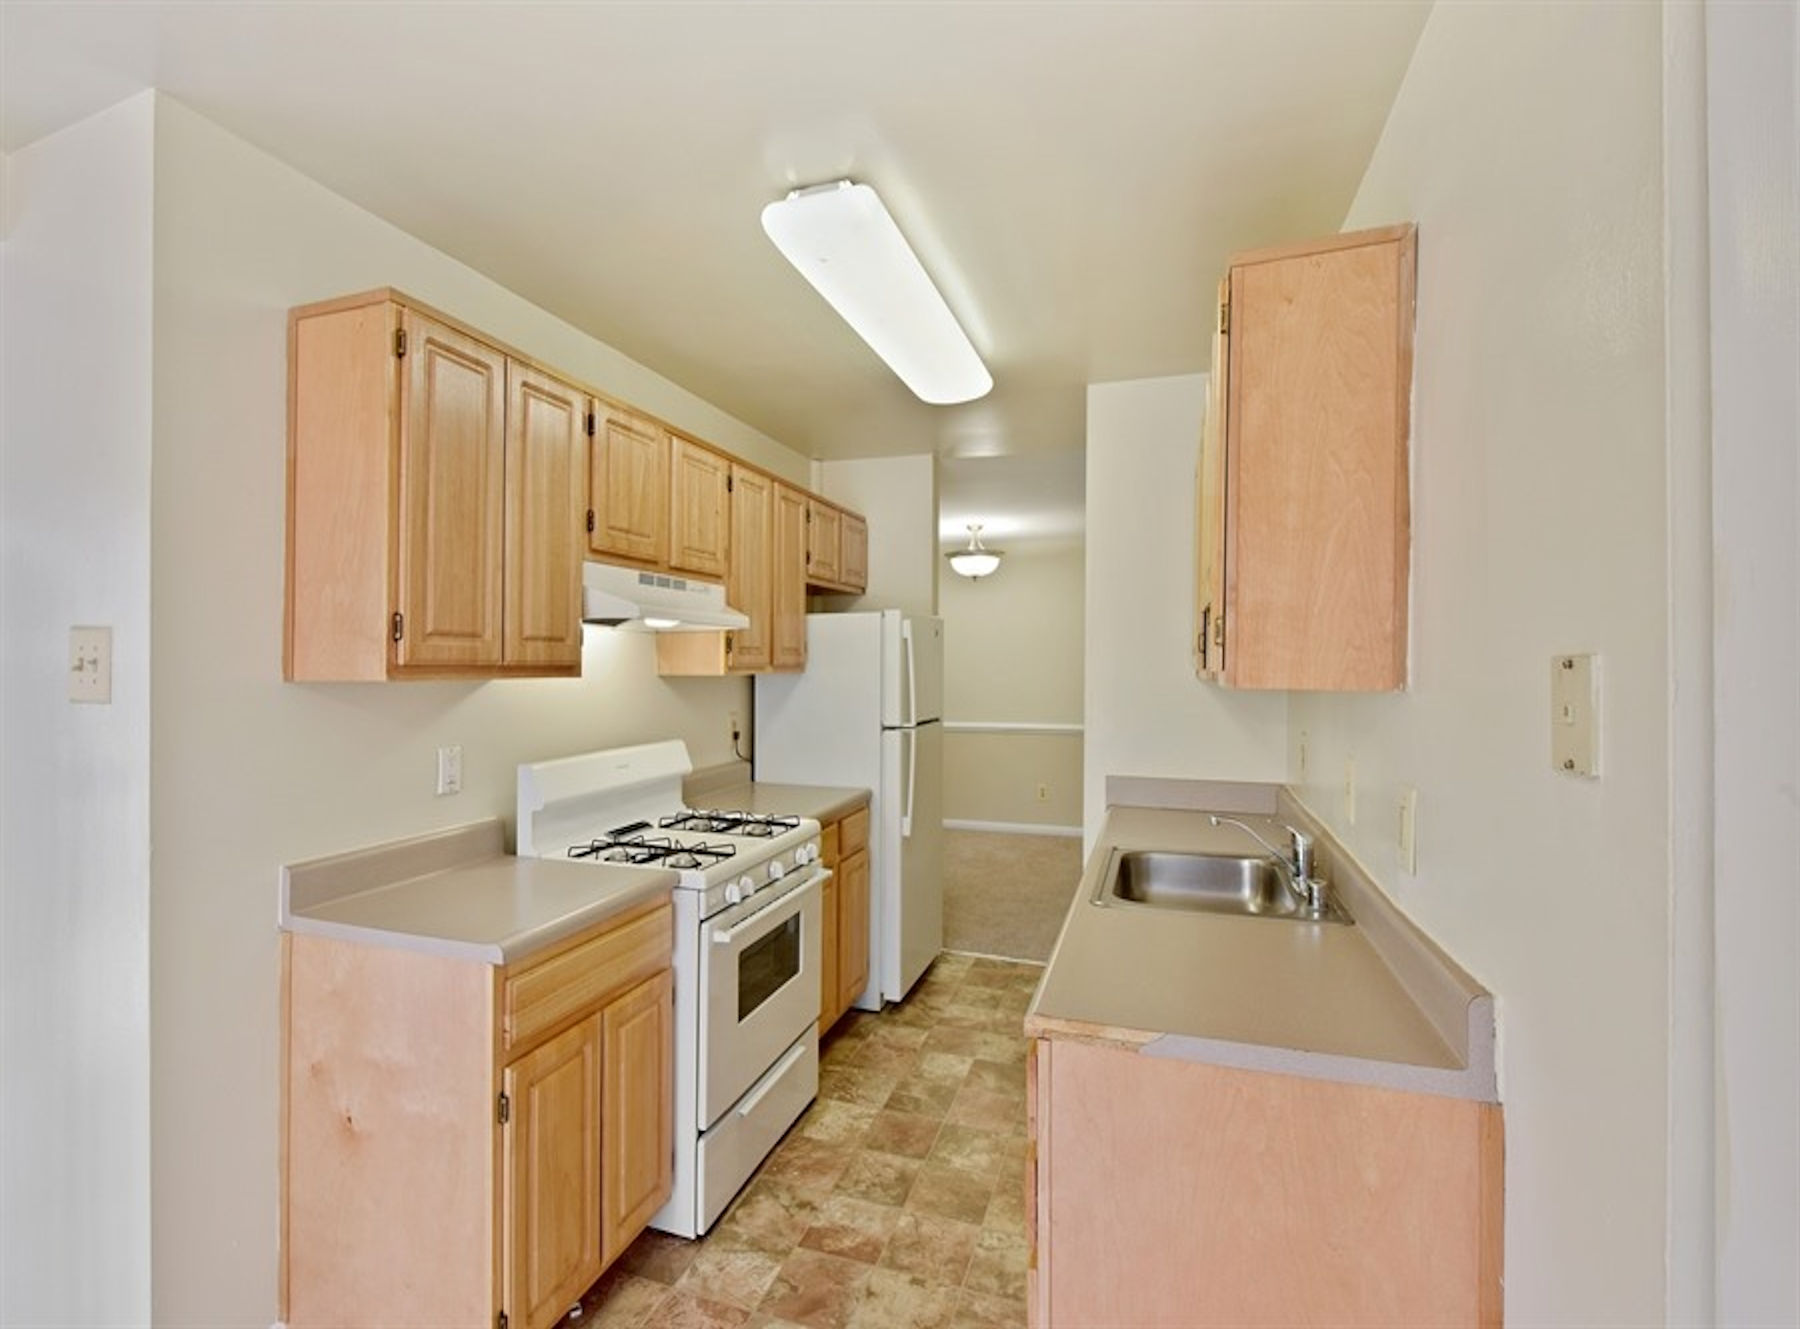 Model kitchen with custom cabinets, white appliances, and vinyl flooring.